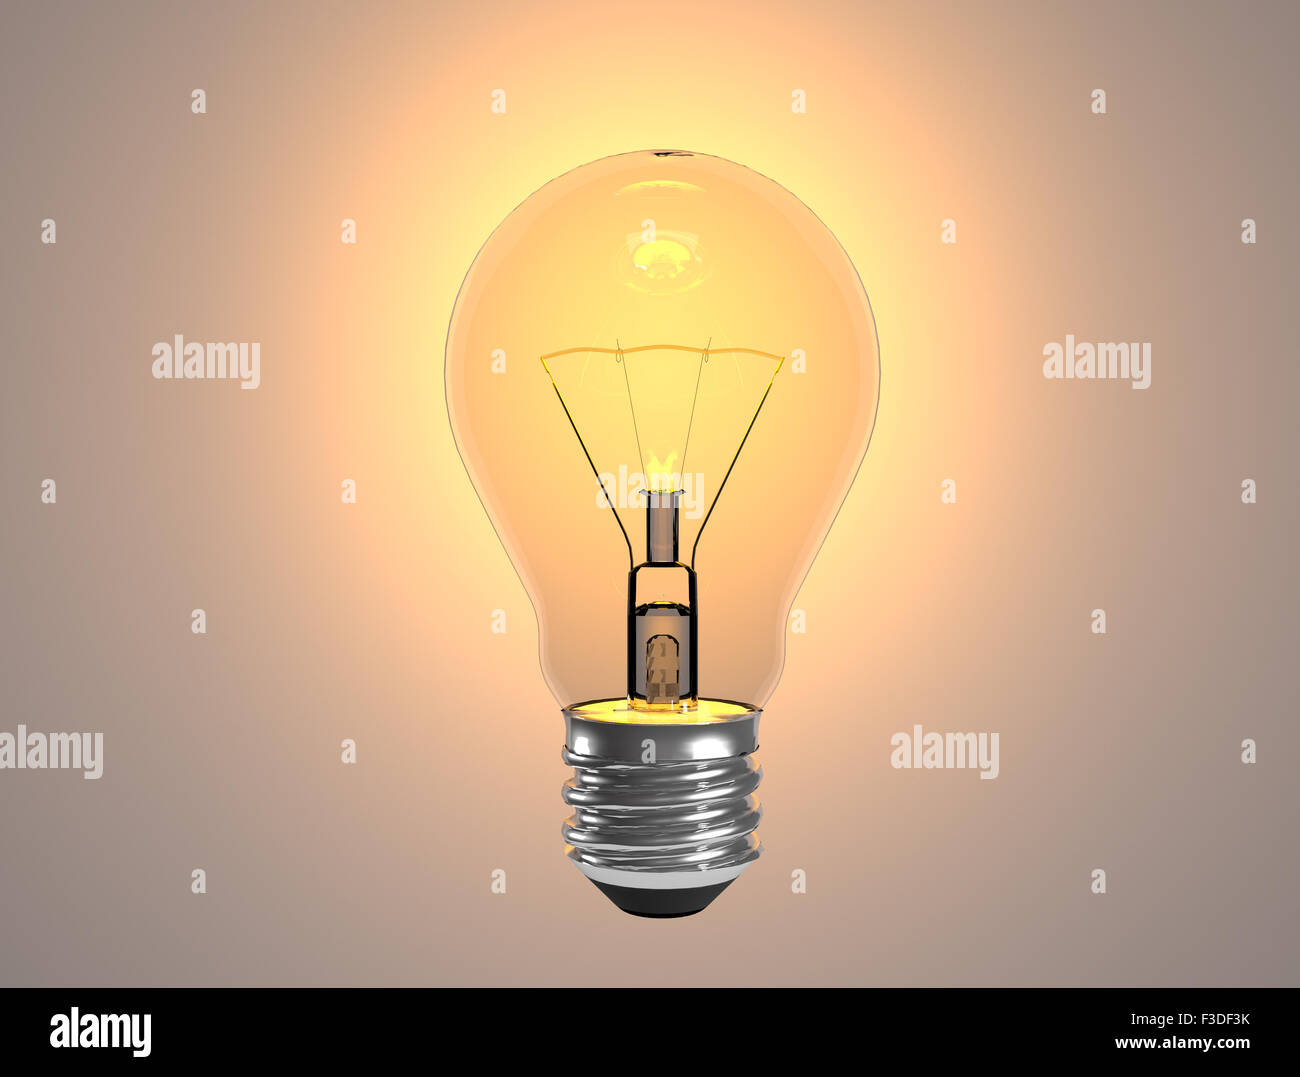 Turn On Tungsten Light Bulb, Glowing Yellow Light Bulb